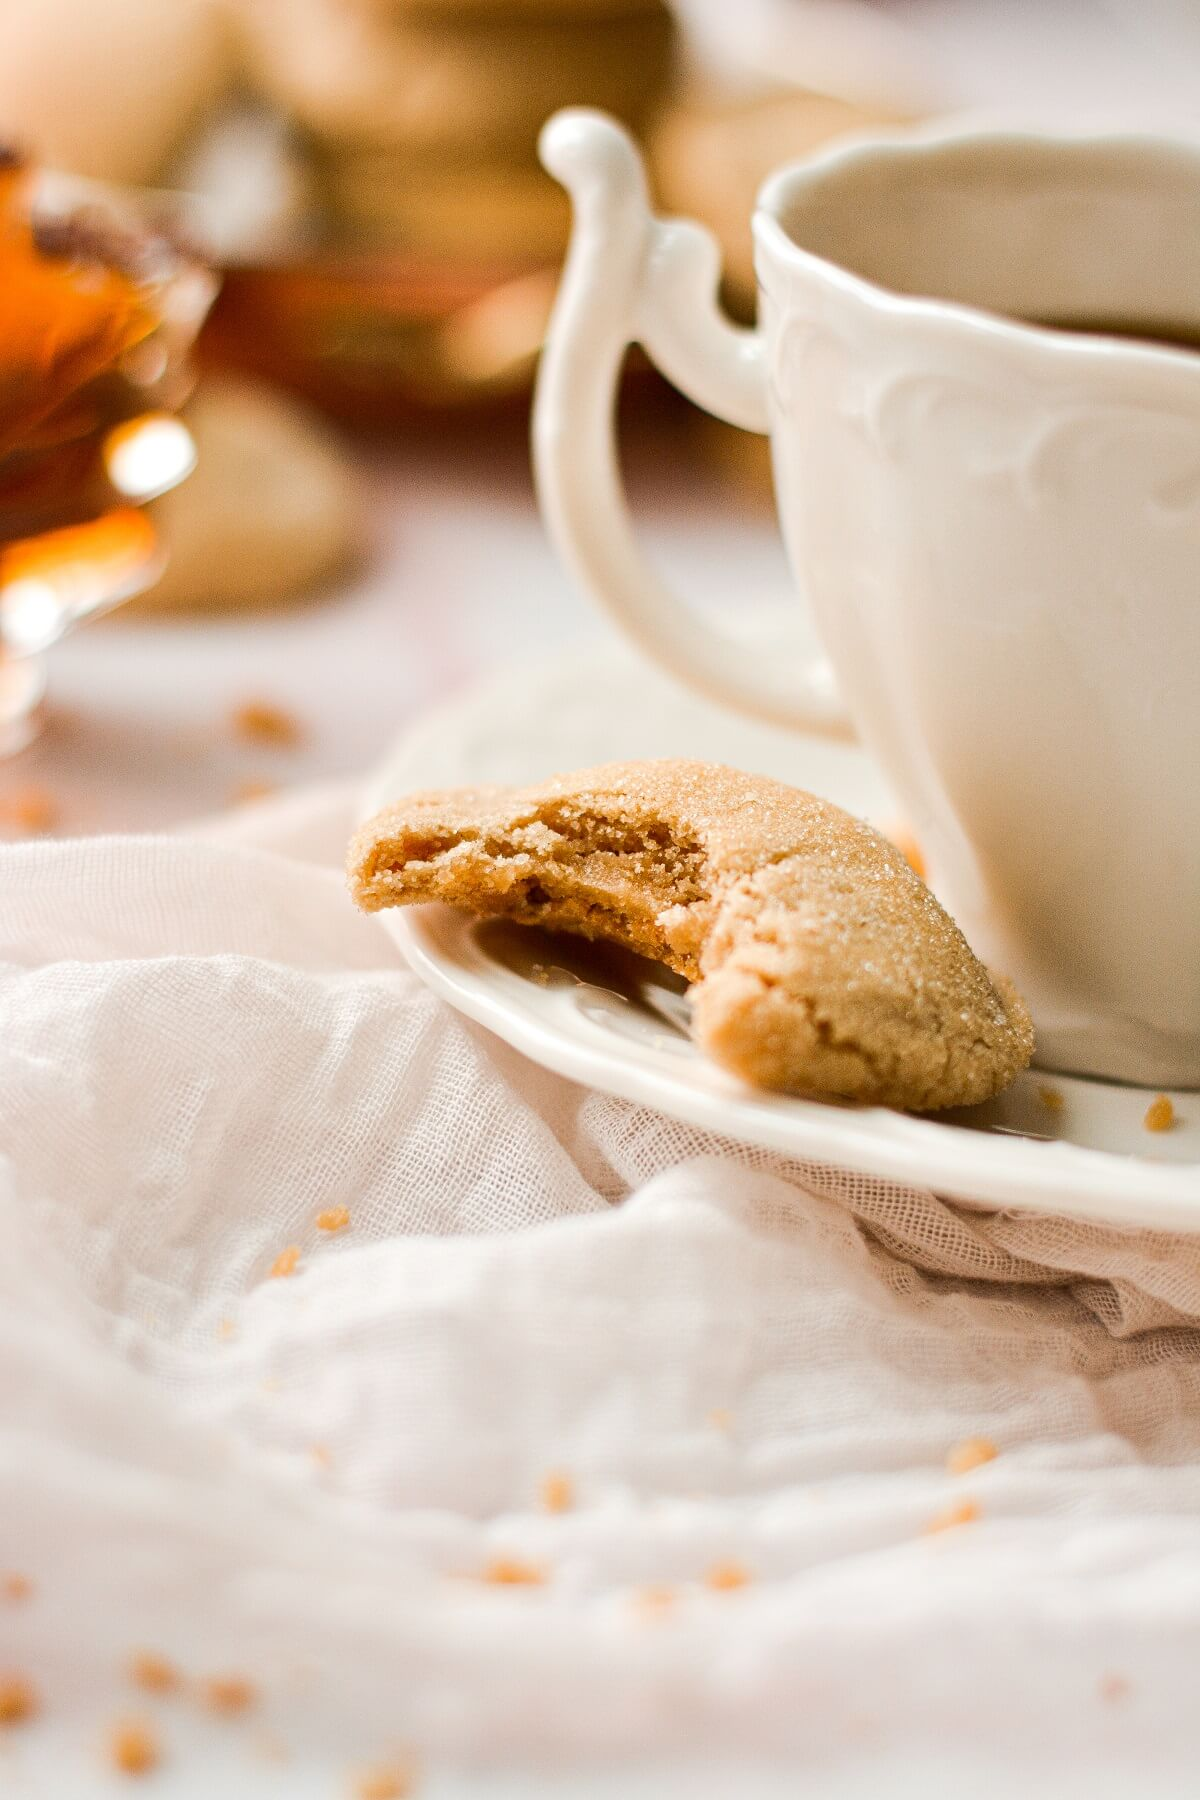 A half eaten soft maple cookie next to a cup of coffee.